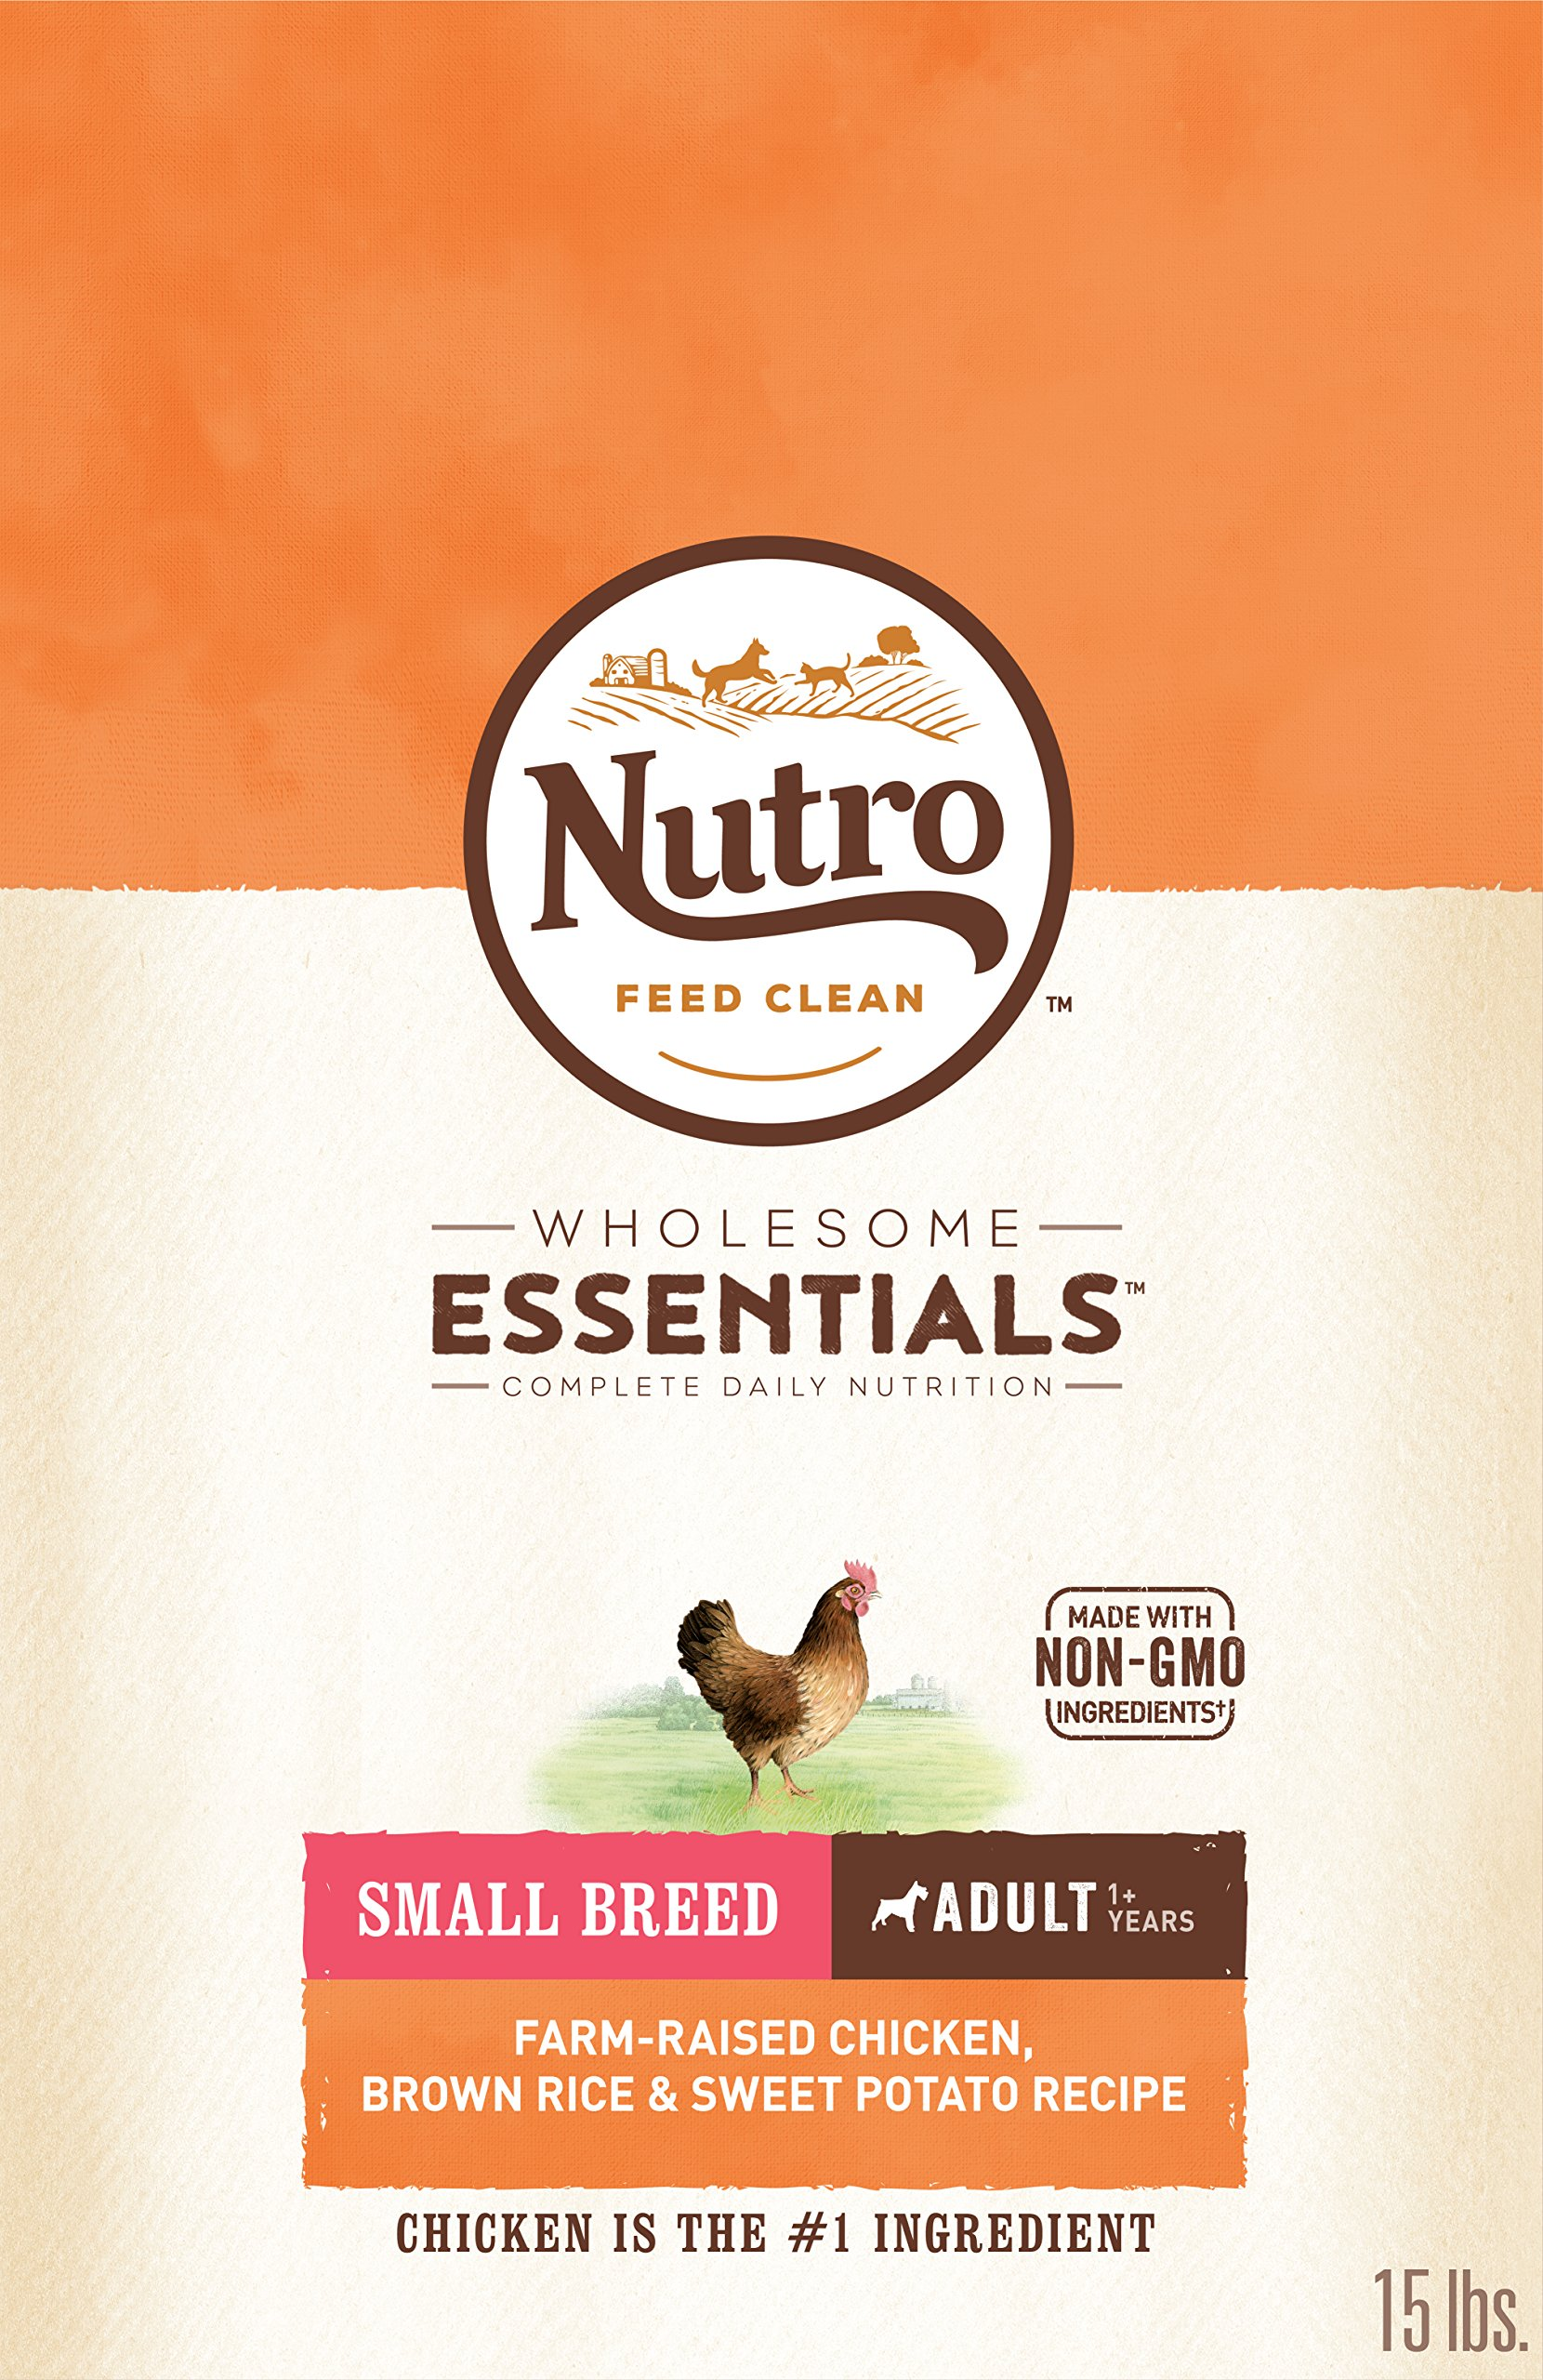 NUTRO WHOLESOME ESSENTIALS Natural Adult Small Breed Dry Dog Food Farm-Raised Chicken, Brown Rice & Sweet Potato Recipe, 15 lb. Bag by Nutro